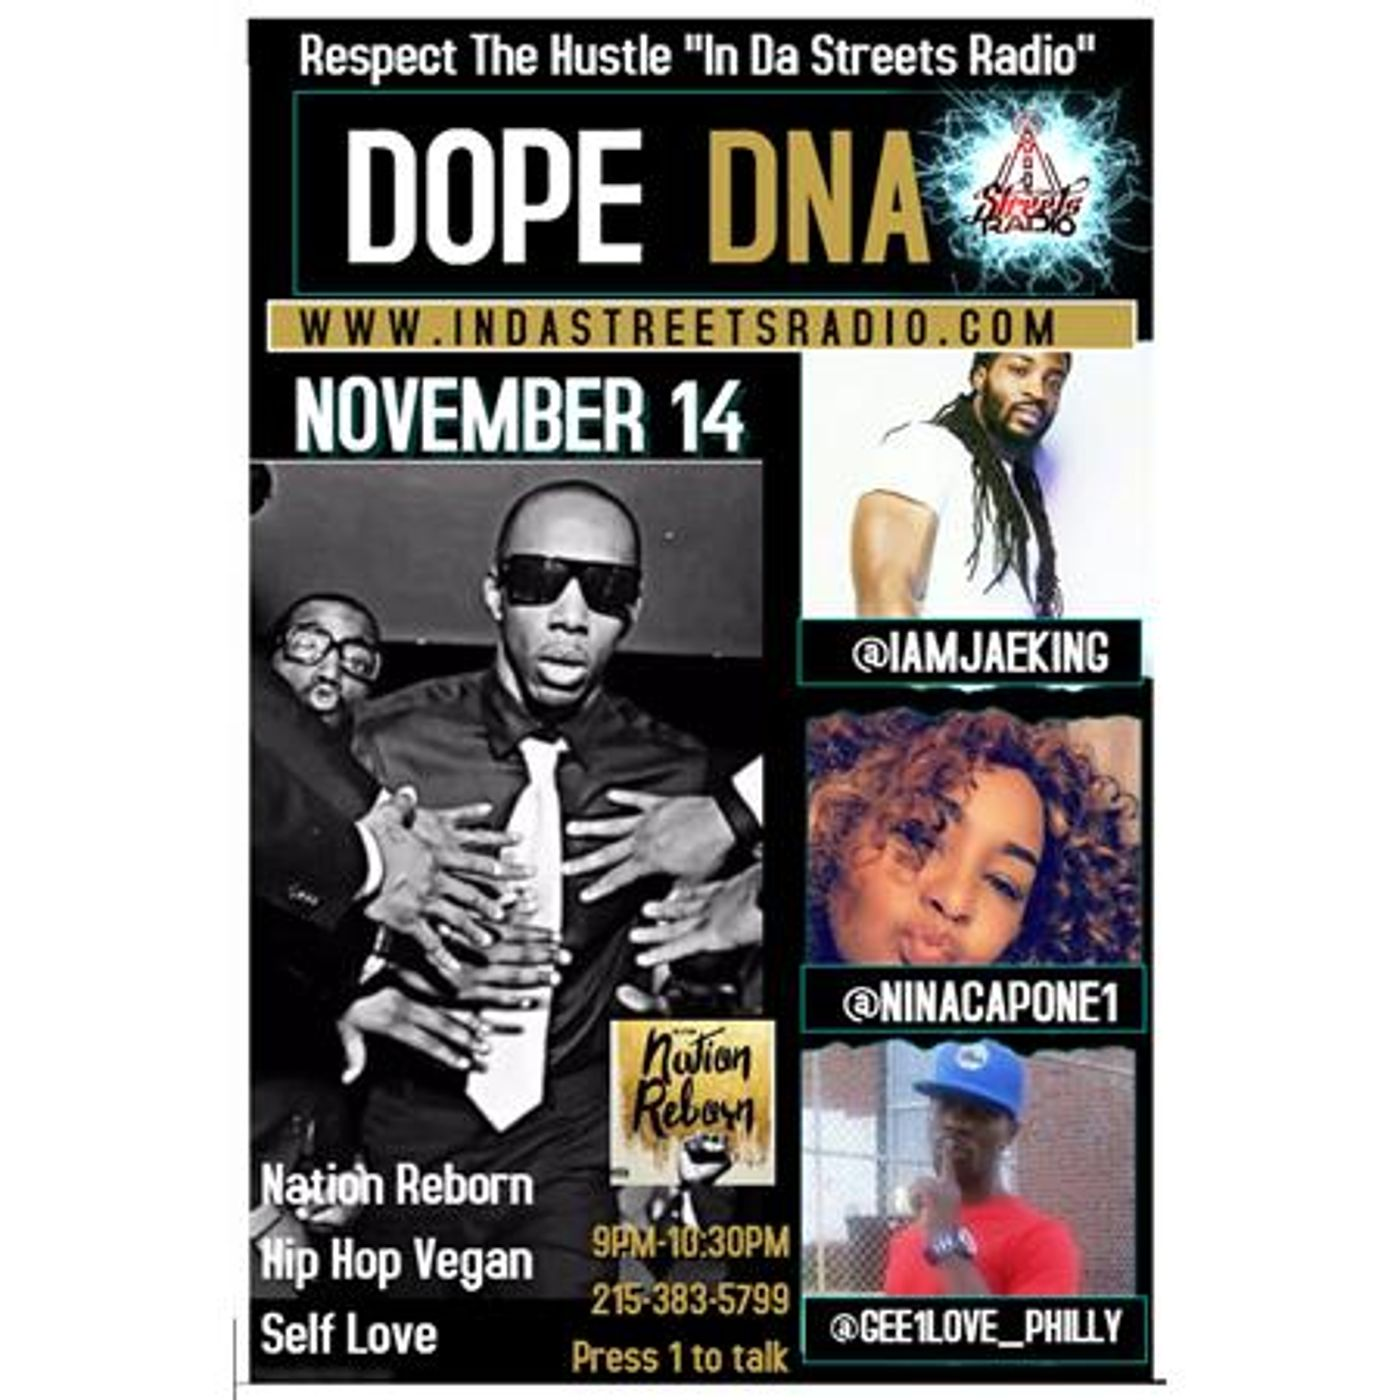 Nation Reborn (single) Live w/ Dope DNA Tune in at 9pm 215-383-5799